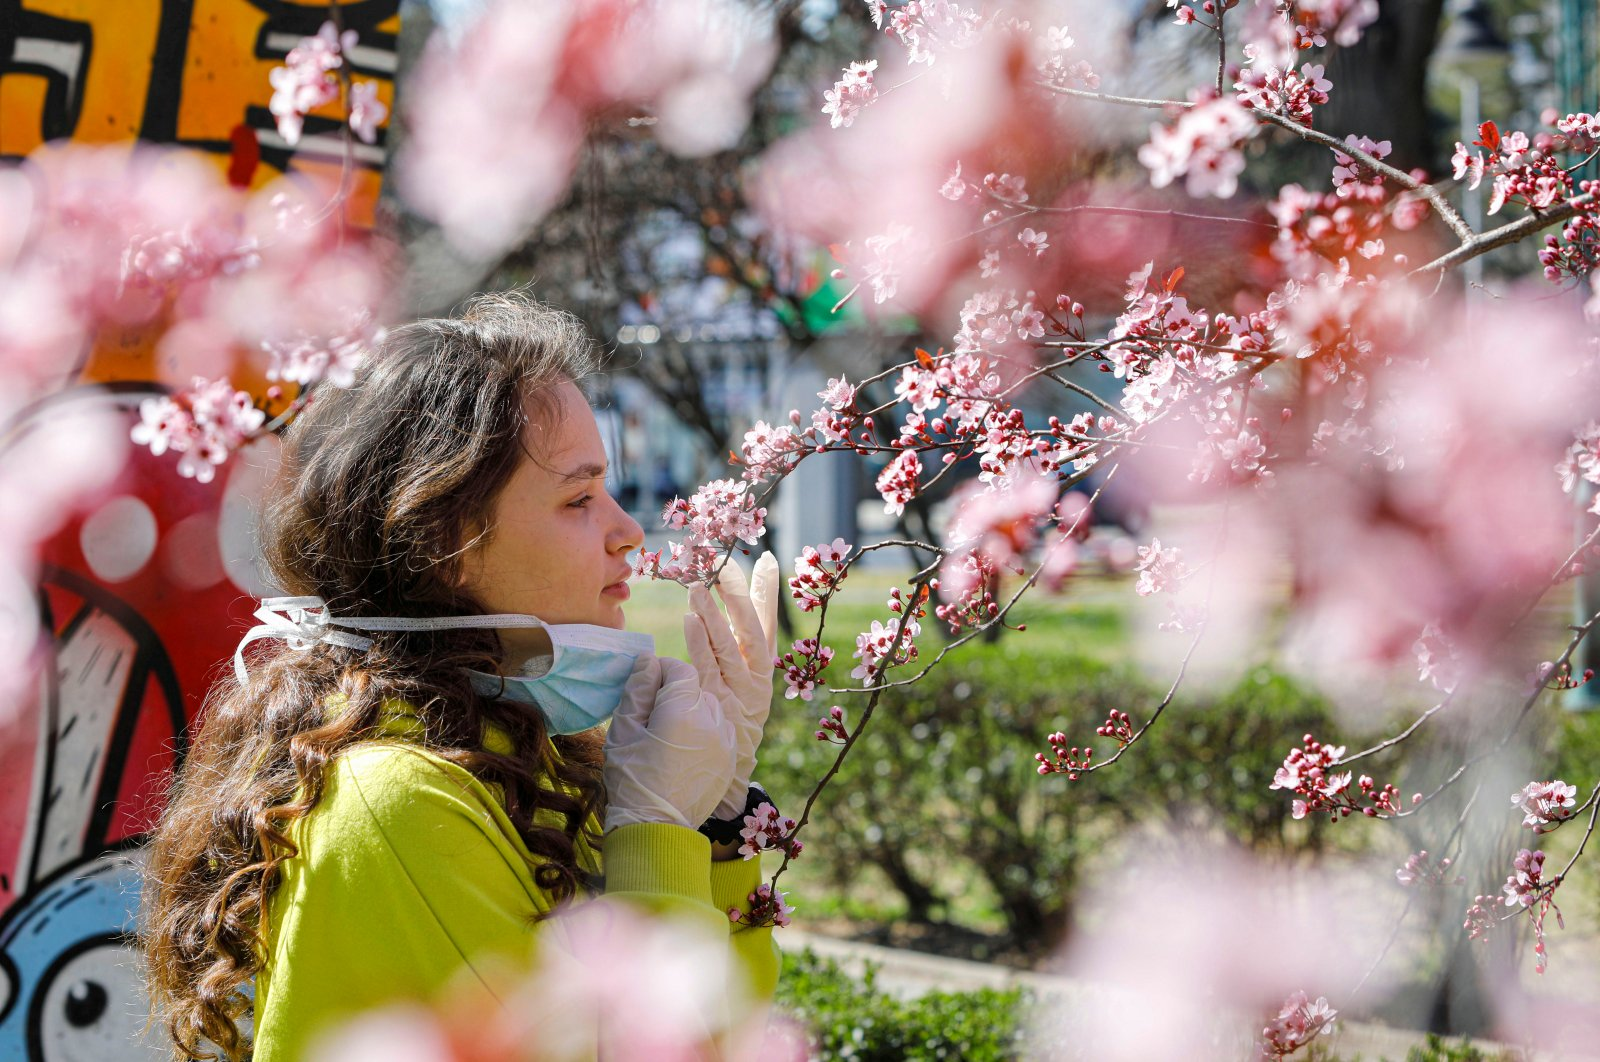 A girl removes her mask to smell the flowers on a blooming tree in Skopje, North Macedonia, Friday, March 20, 2020. (Reuters Photo)